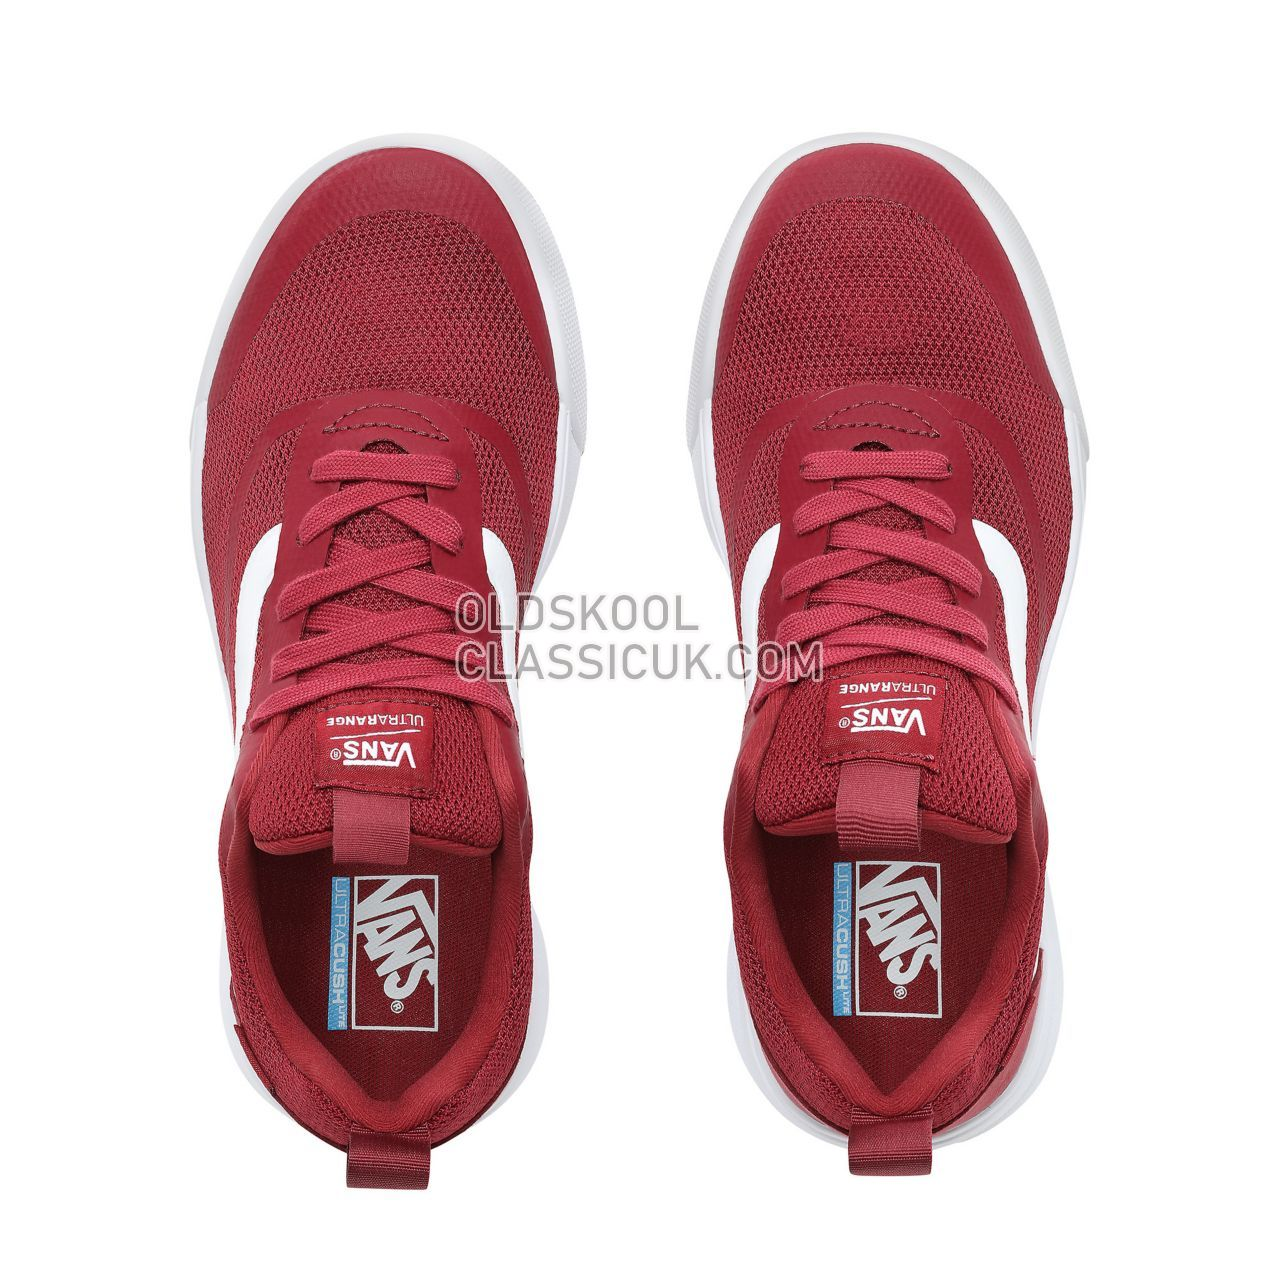 ed7fded55f41c8 Vans Ultrarange Rapidweld Sneakers Mens Rumba Red True White VN0A3MVUVG4  Shoes - £74